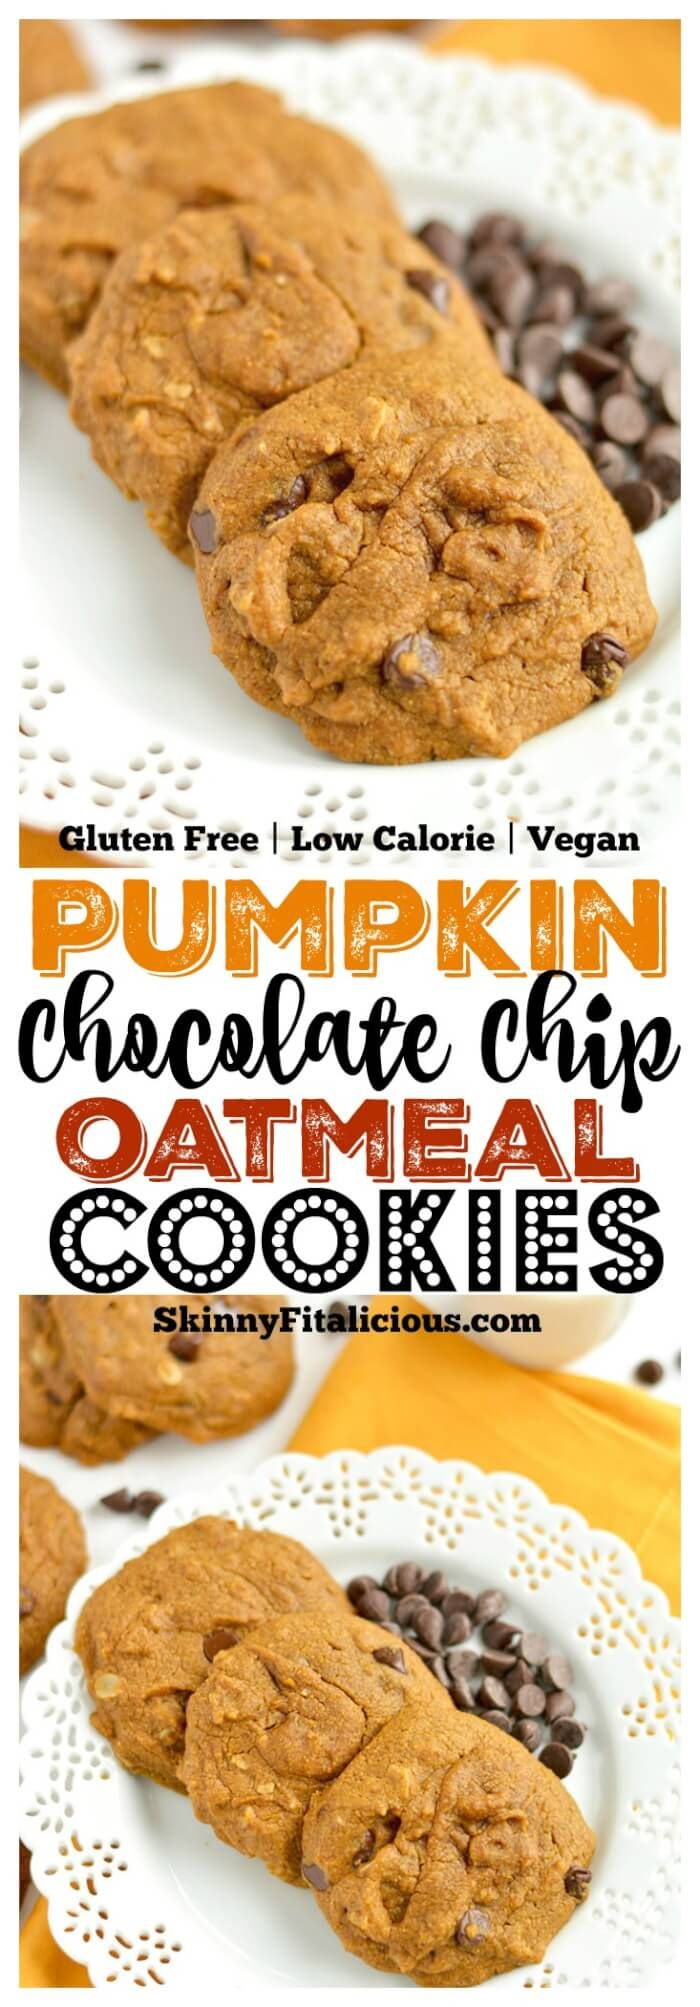 Perfectly soft baked Pumpkin Chocolate Chip Oatmeal Cookies made healthy with whole grains and no refined oil or sugar. A scrumptious treat that's easy to make with unbeatable flavor! Gluten Free + Lo (Vegan Thanksgiving Cookies)